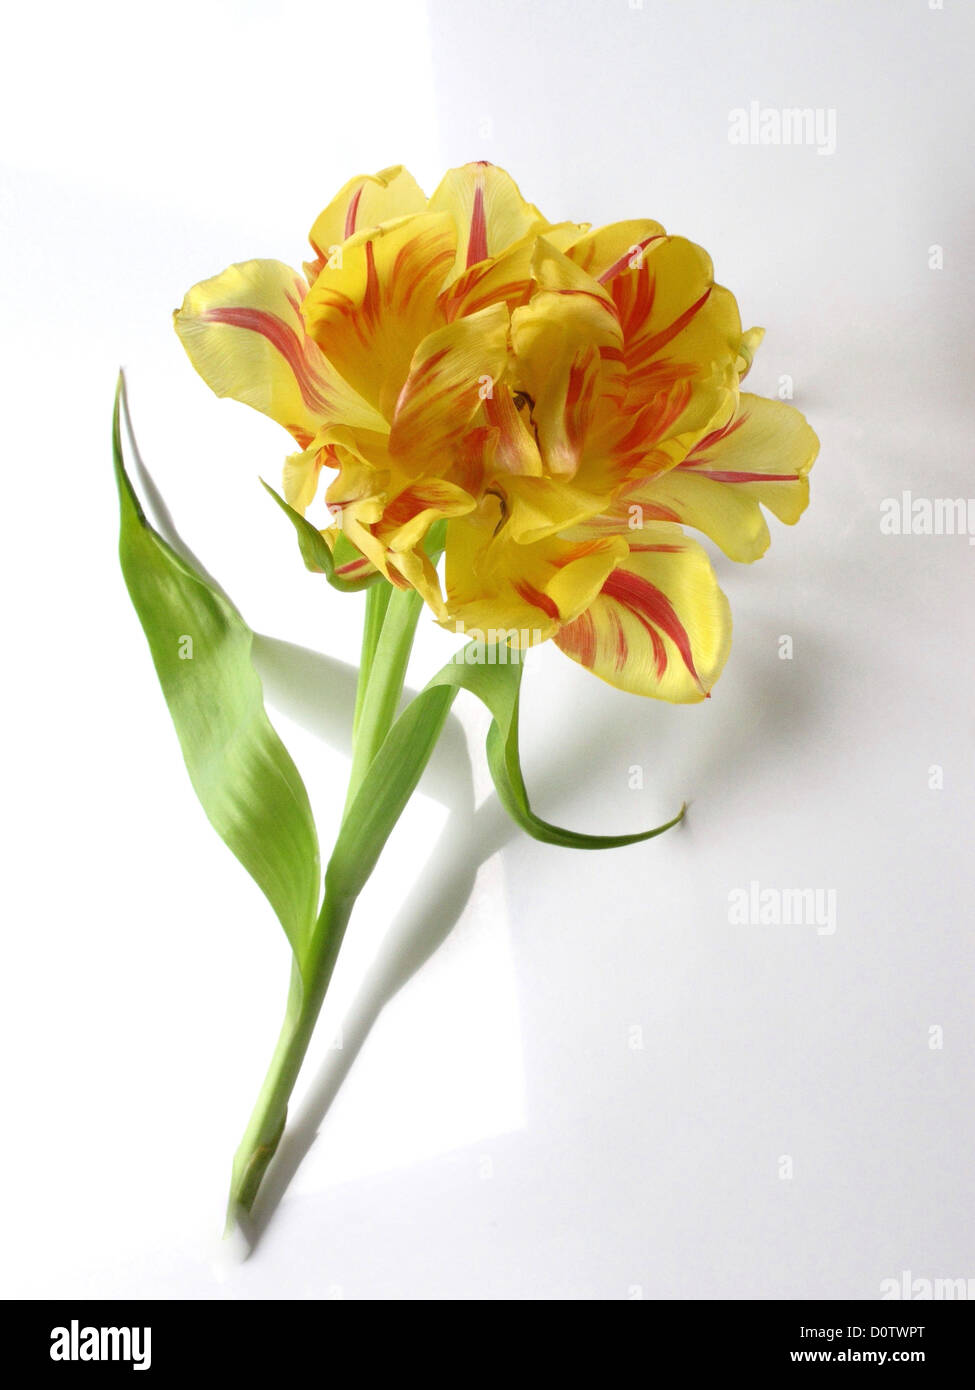 Flower Camellia Yellow Red Symbol Transitoriness Death Grief